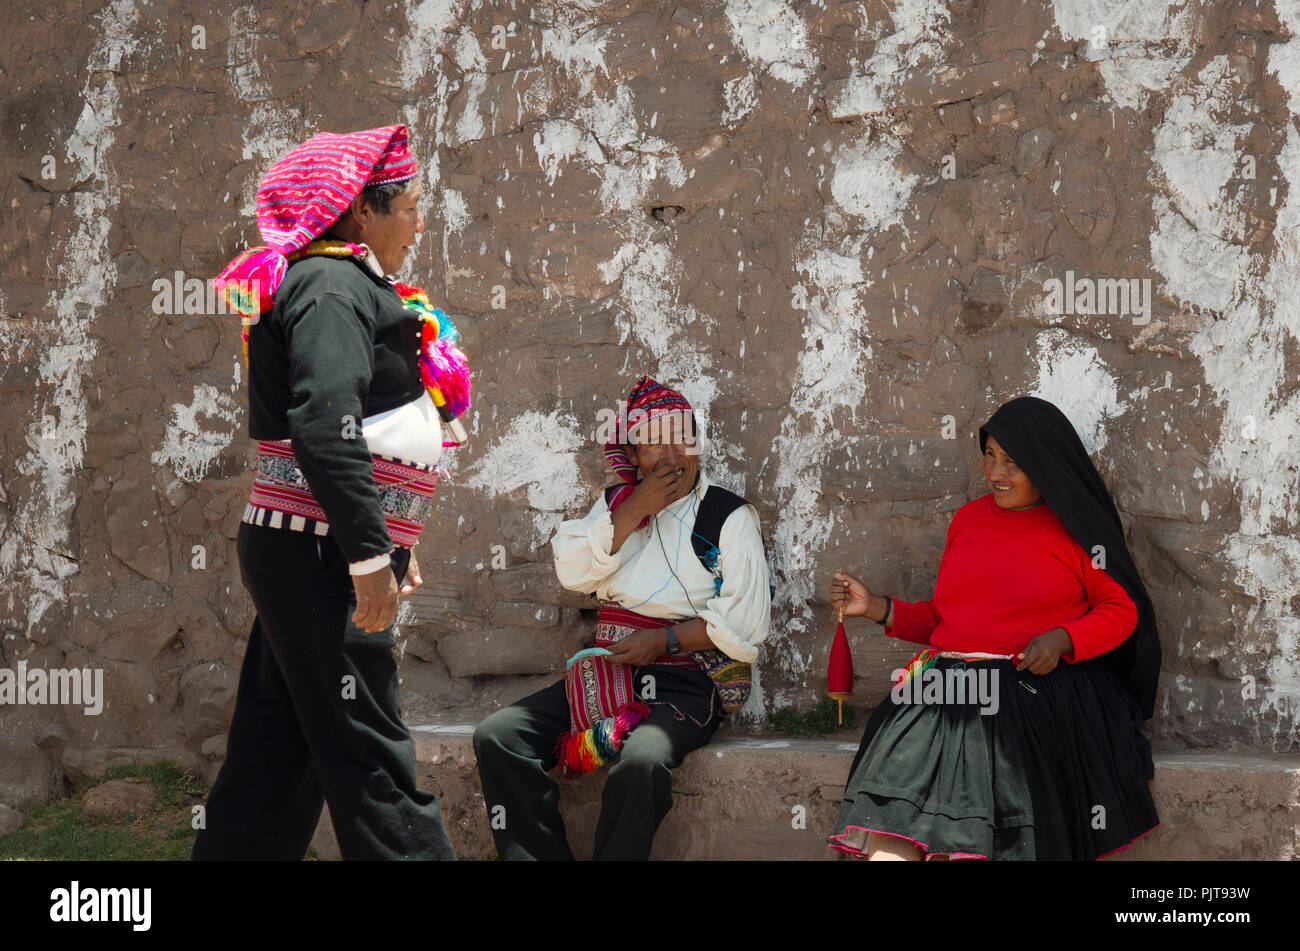 The Mayor Of Taquile island Greeting Local People. October 17, 2012 - Taquile island, Peru - Stock Image